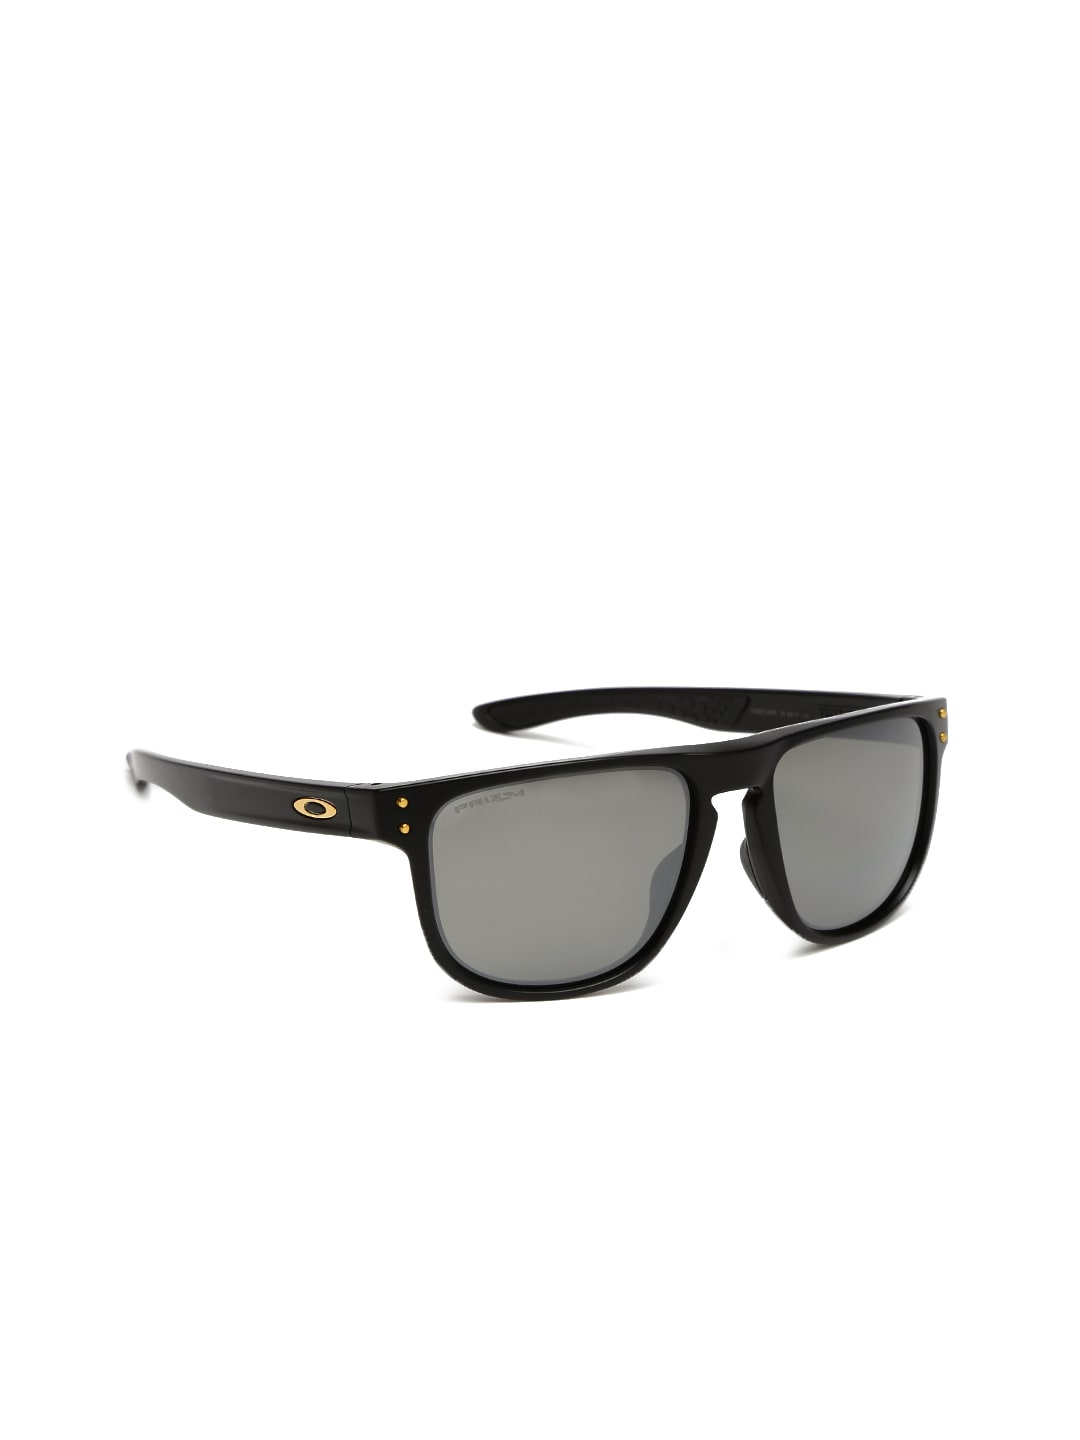 9221b5b721 Sunglasses For Men - Buy Mens Sunglasses Online in India